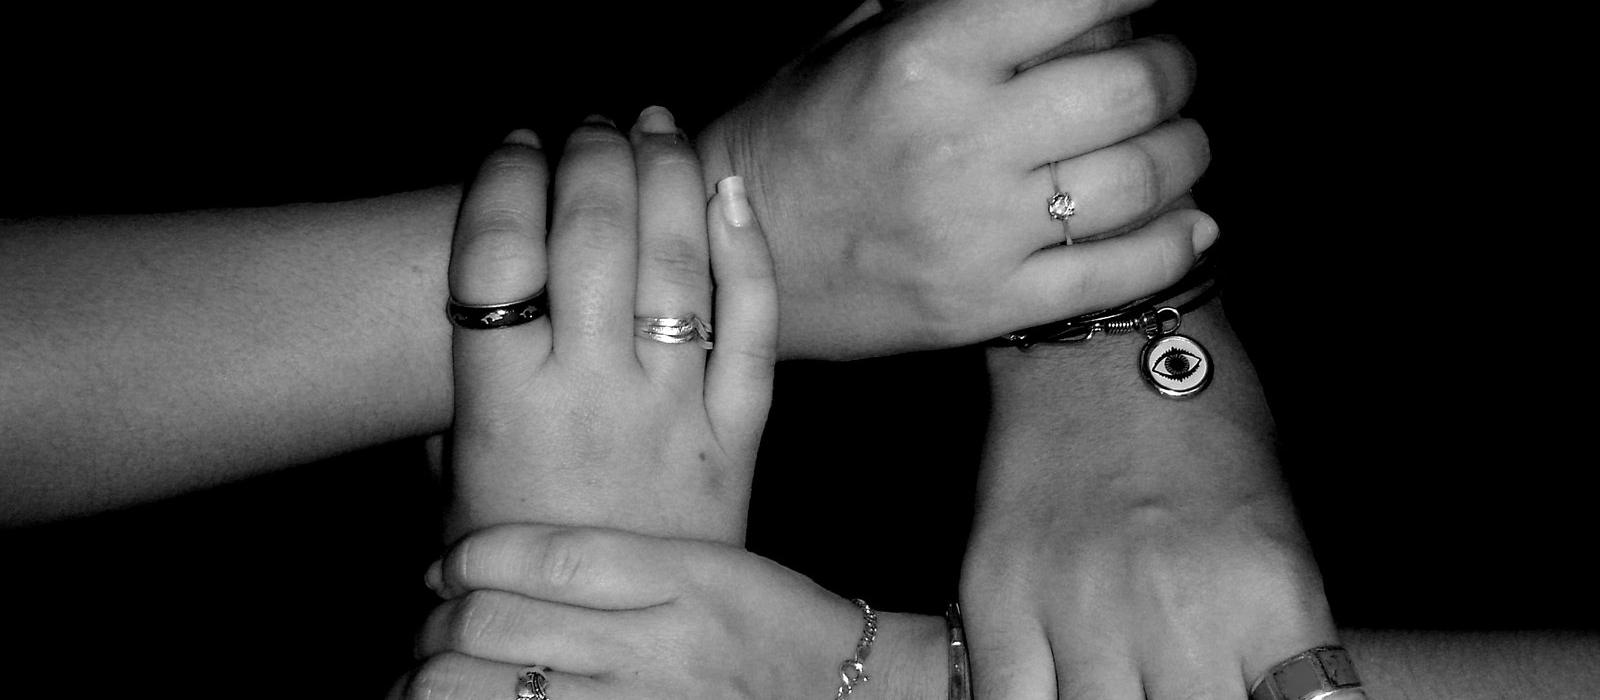 Support group, hands joined